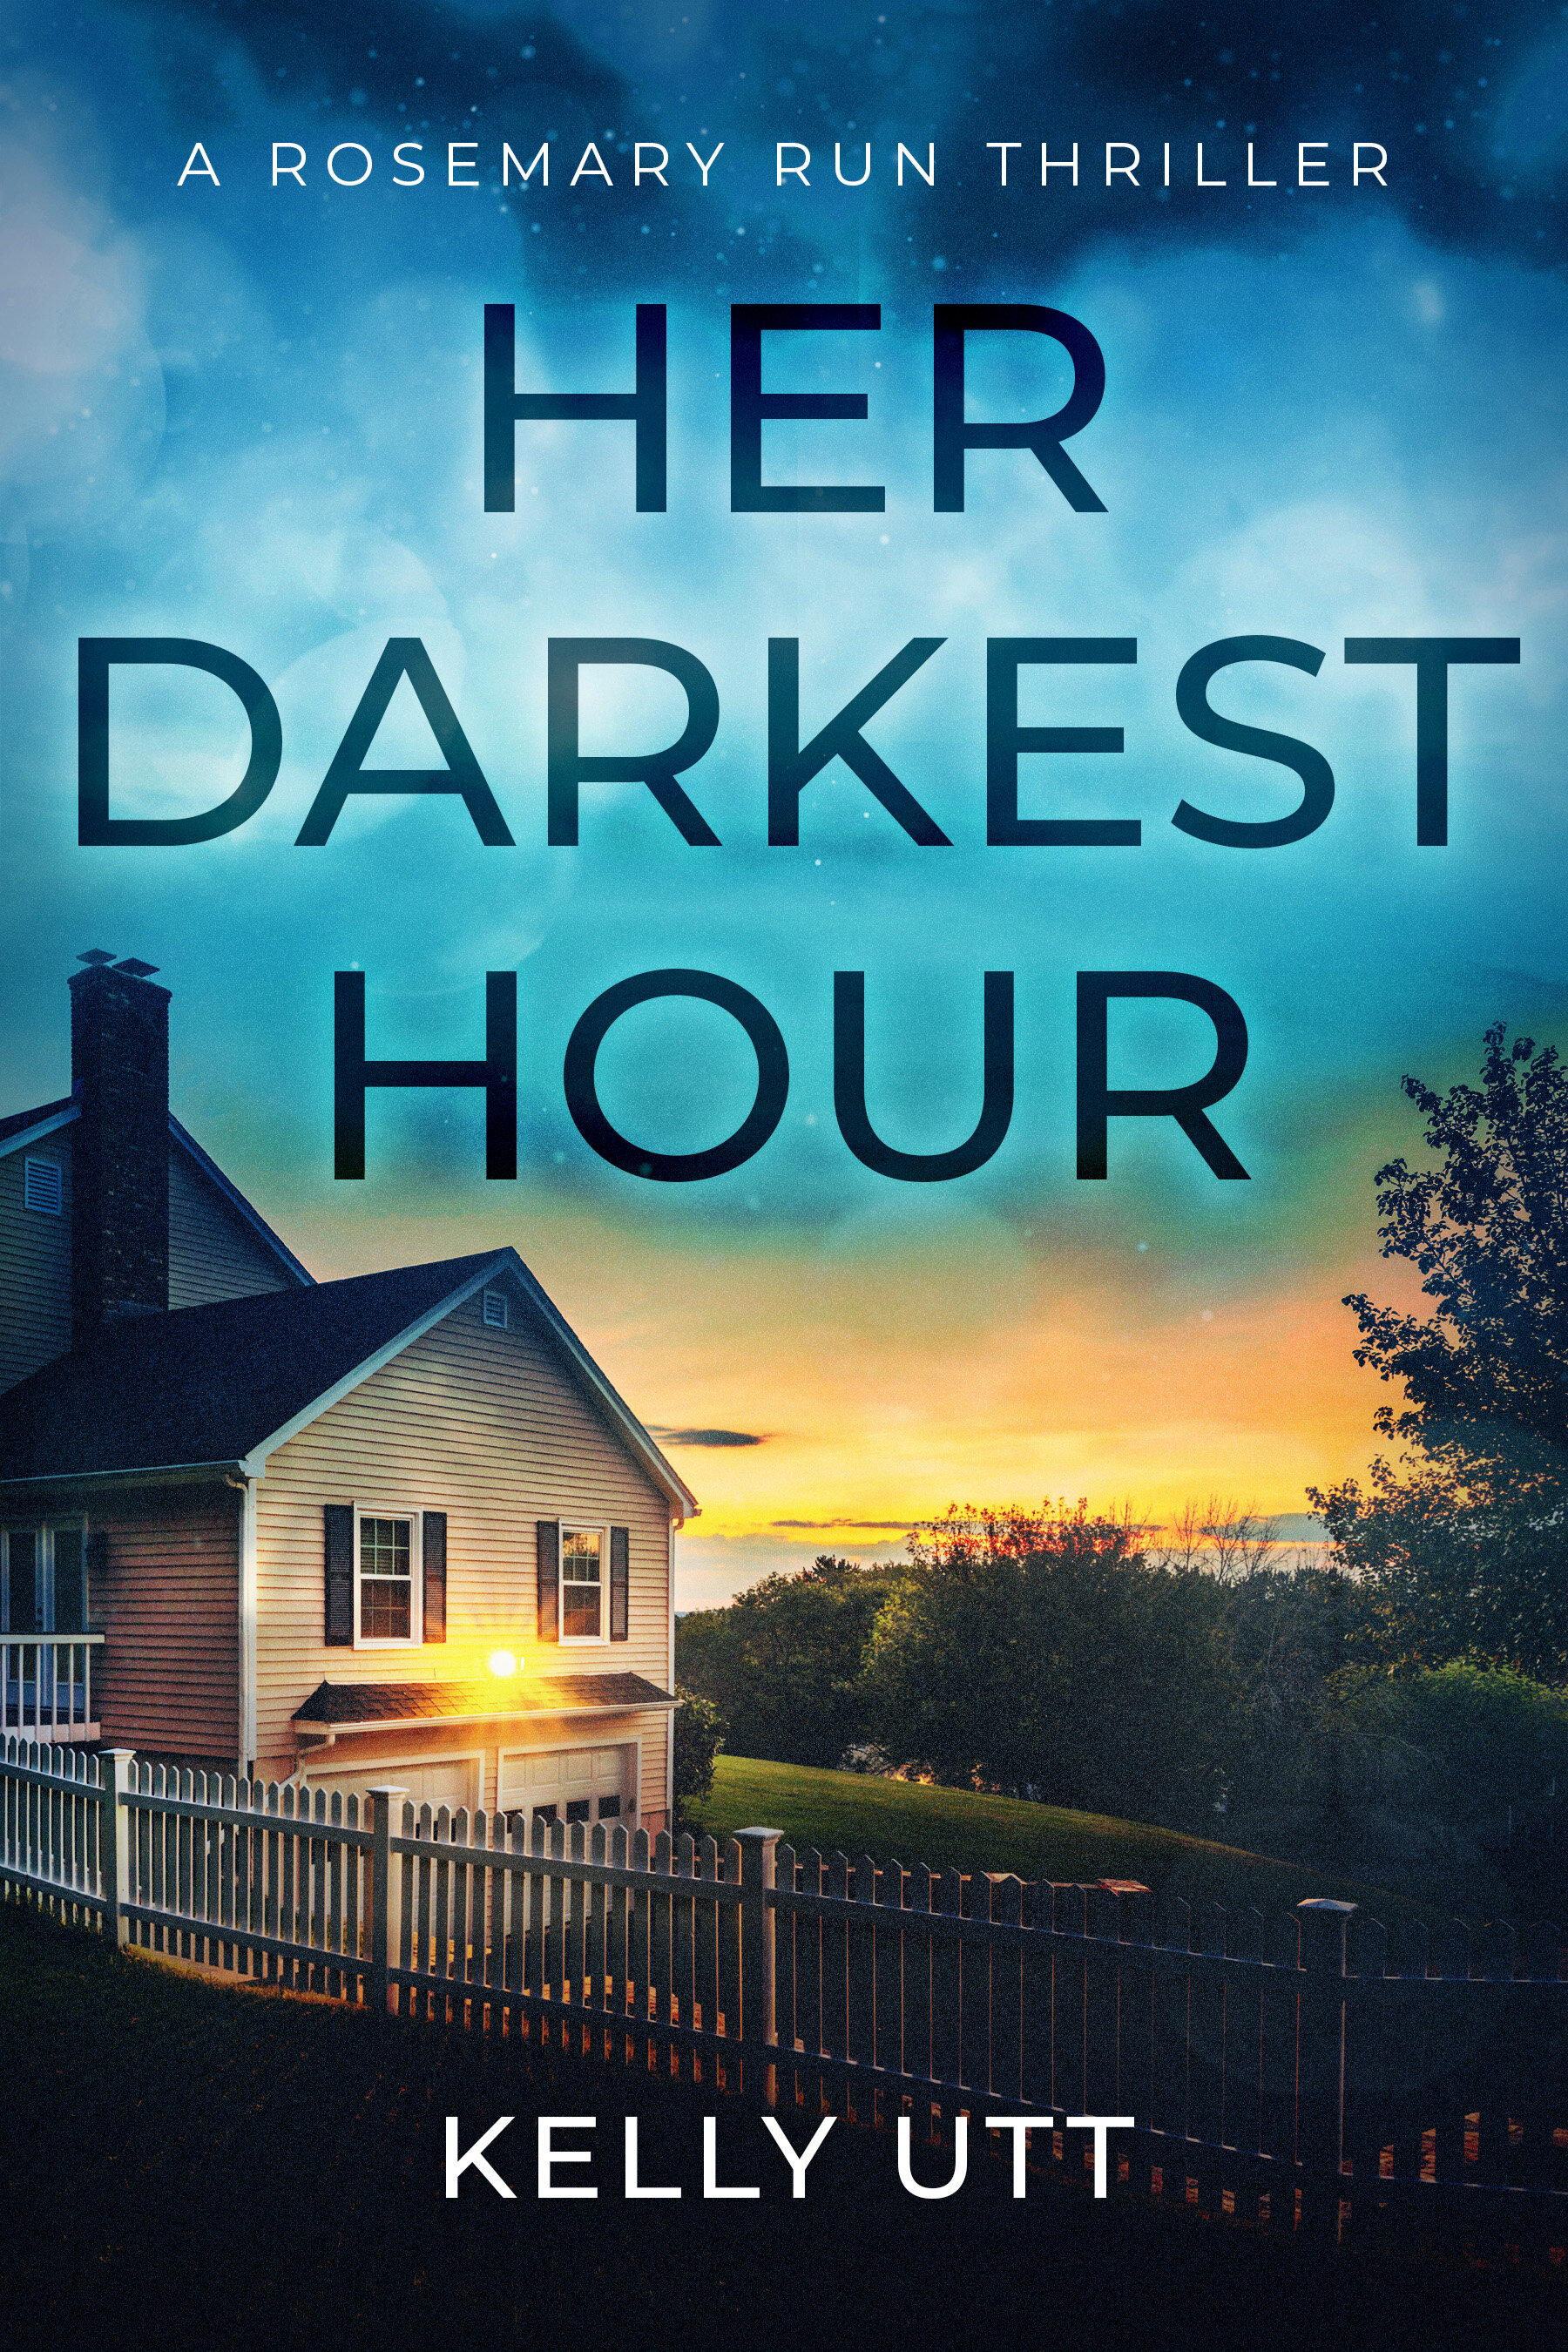 her-darkest-hour-by-kelly-utt.jpg